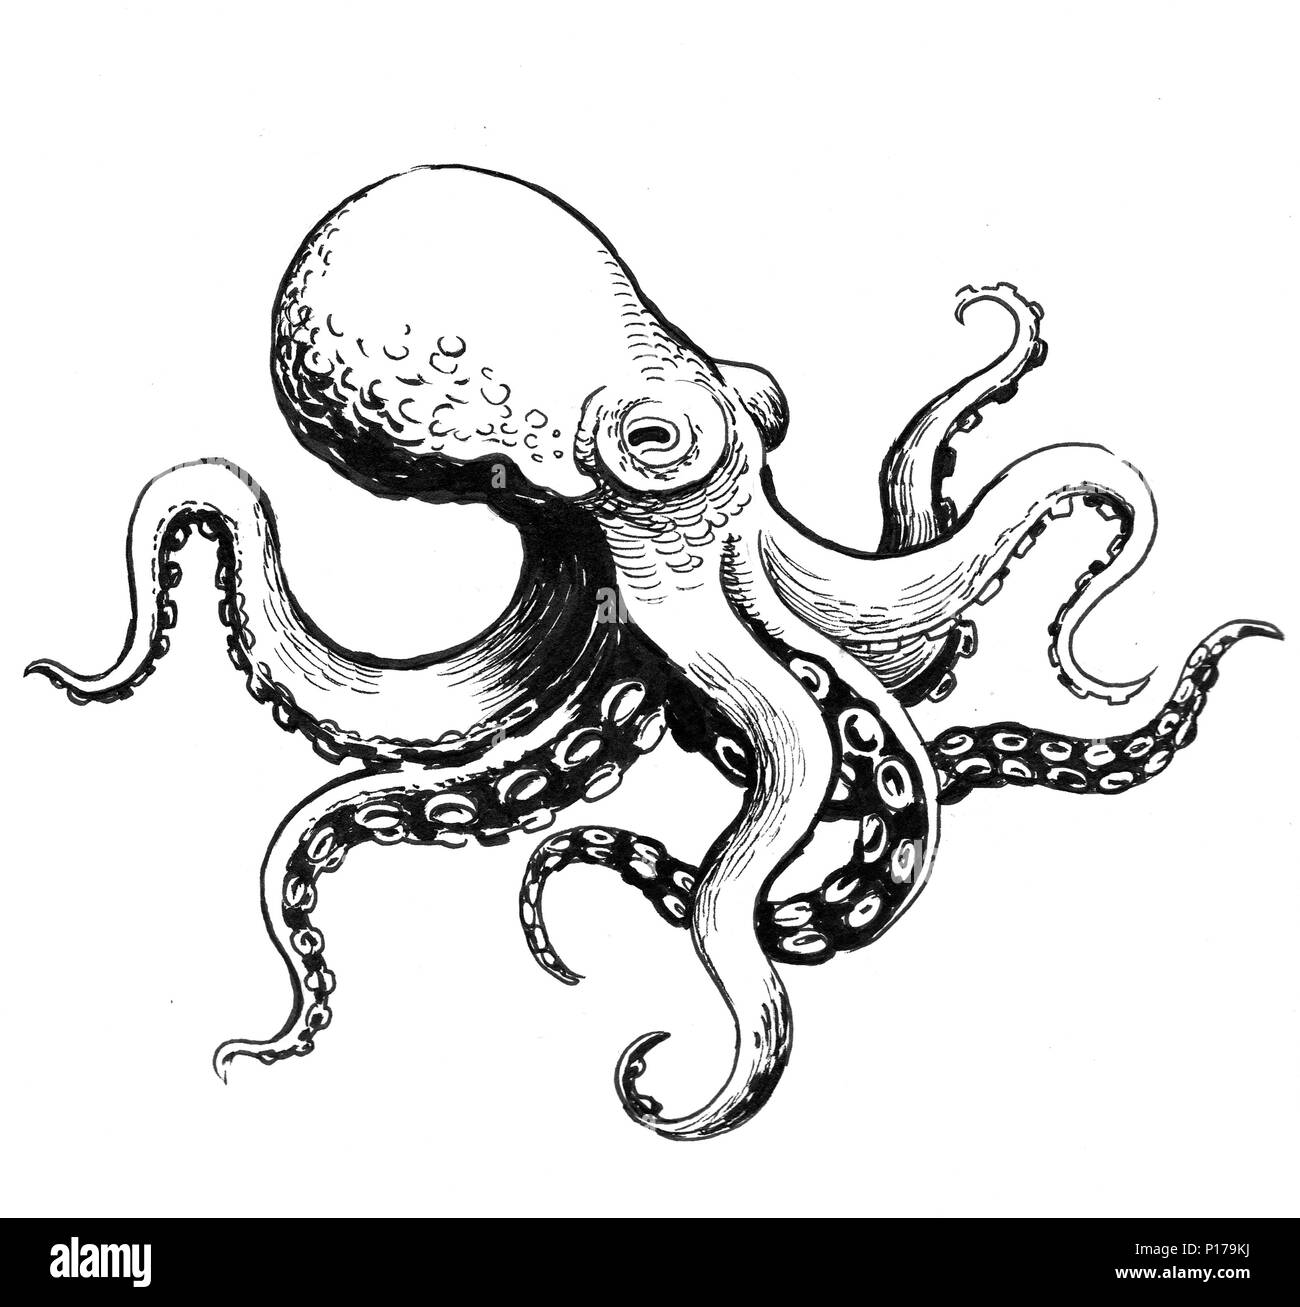 octopus animal ink black and white drawing stock photo